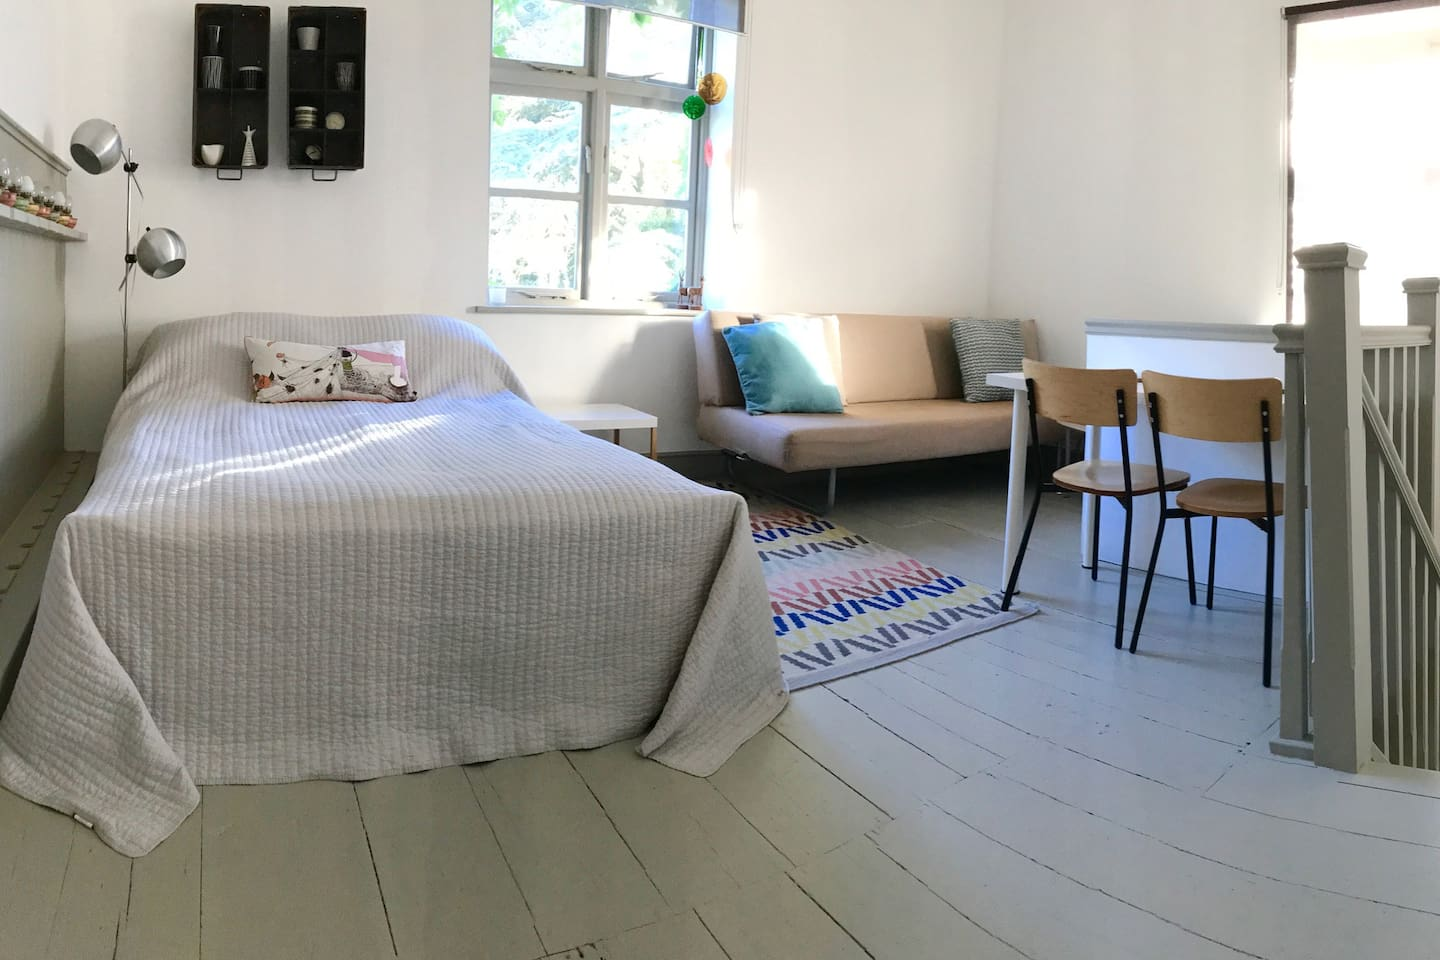 Modern, light and airy Studio apartment with double bed and open plan living space